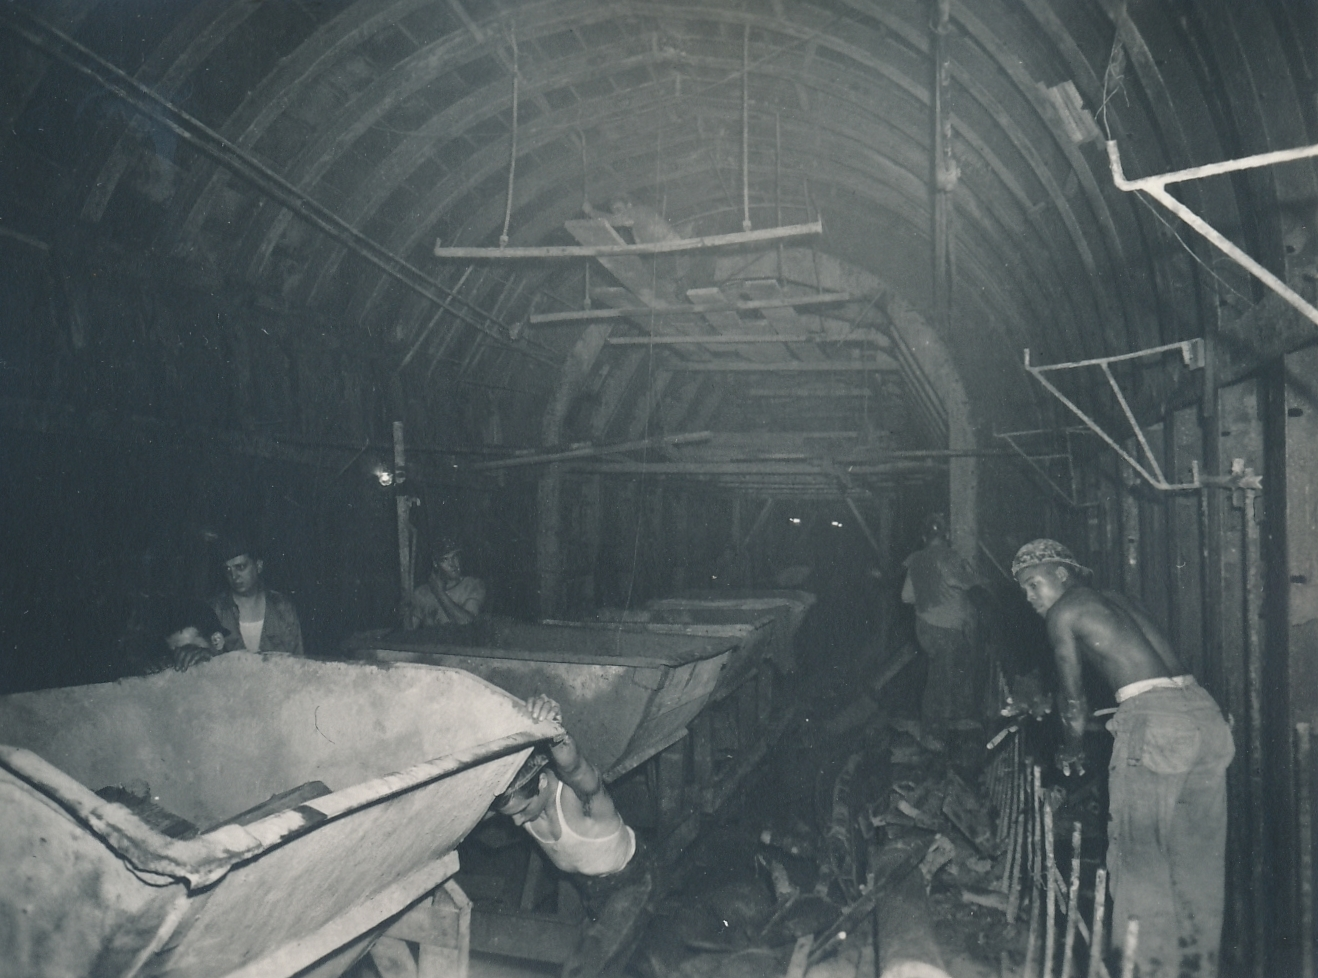 Another view of the PWA subway project in Chicago. Photo courtesy of the National Archives (June 1940).